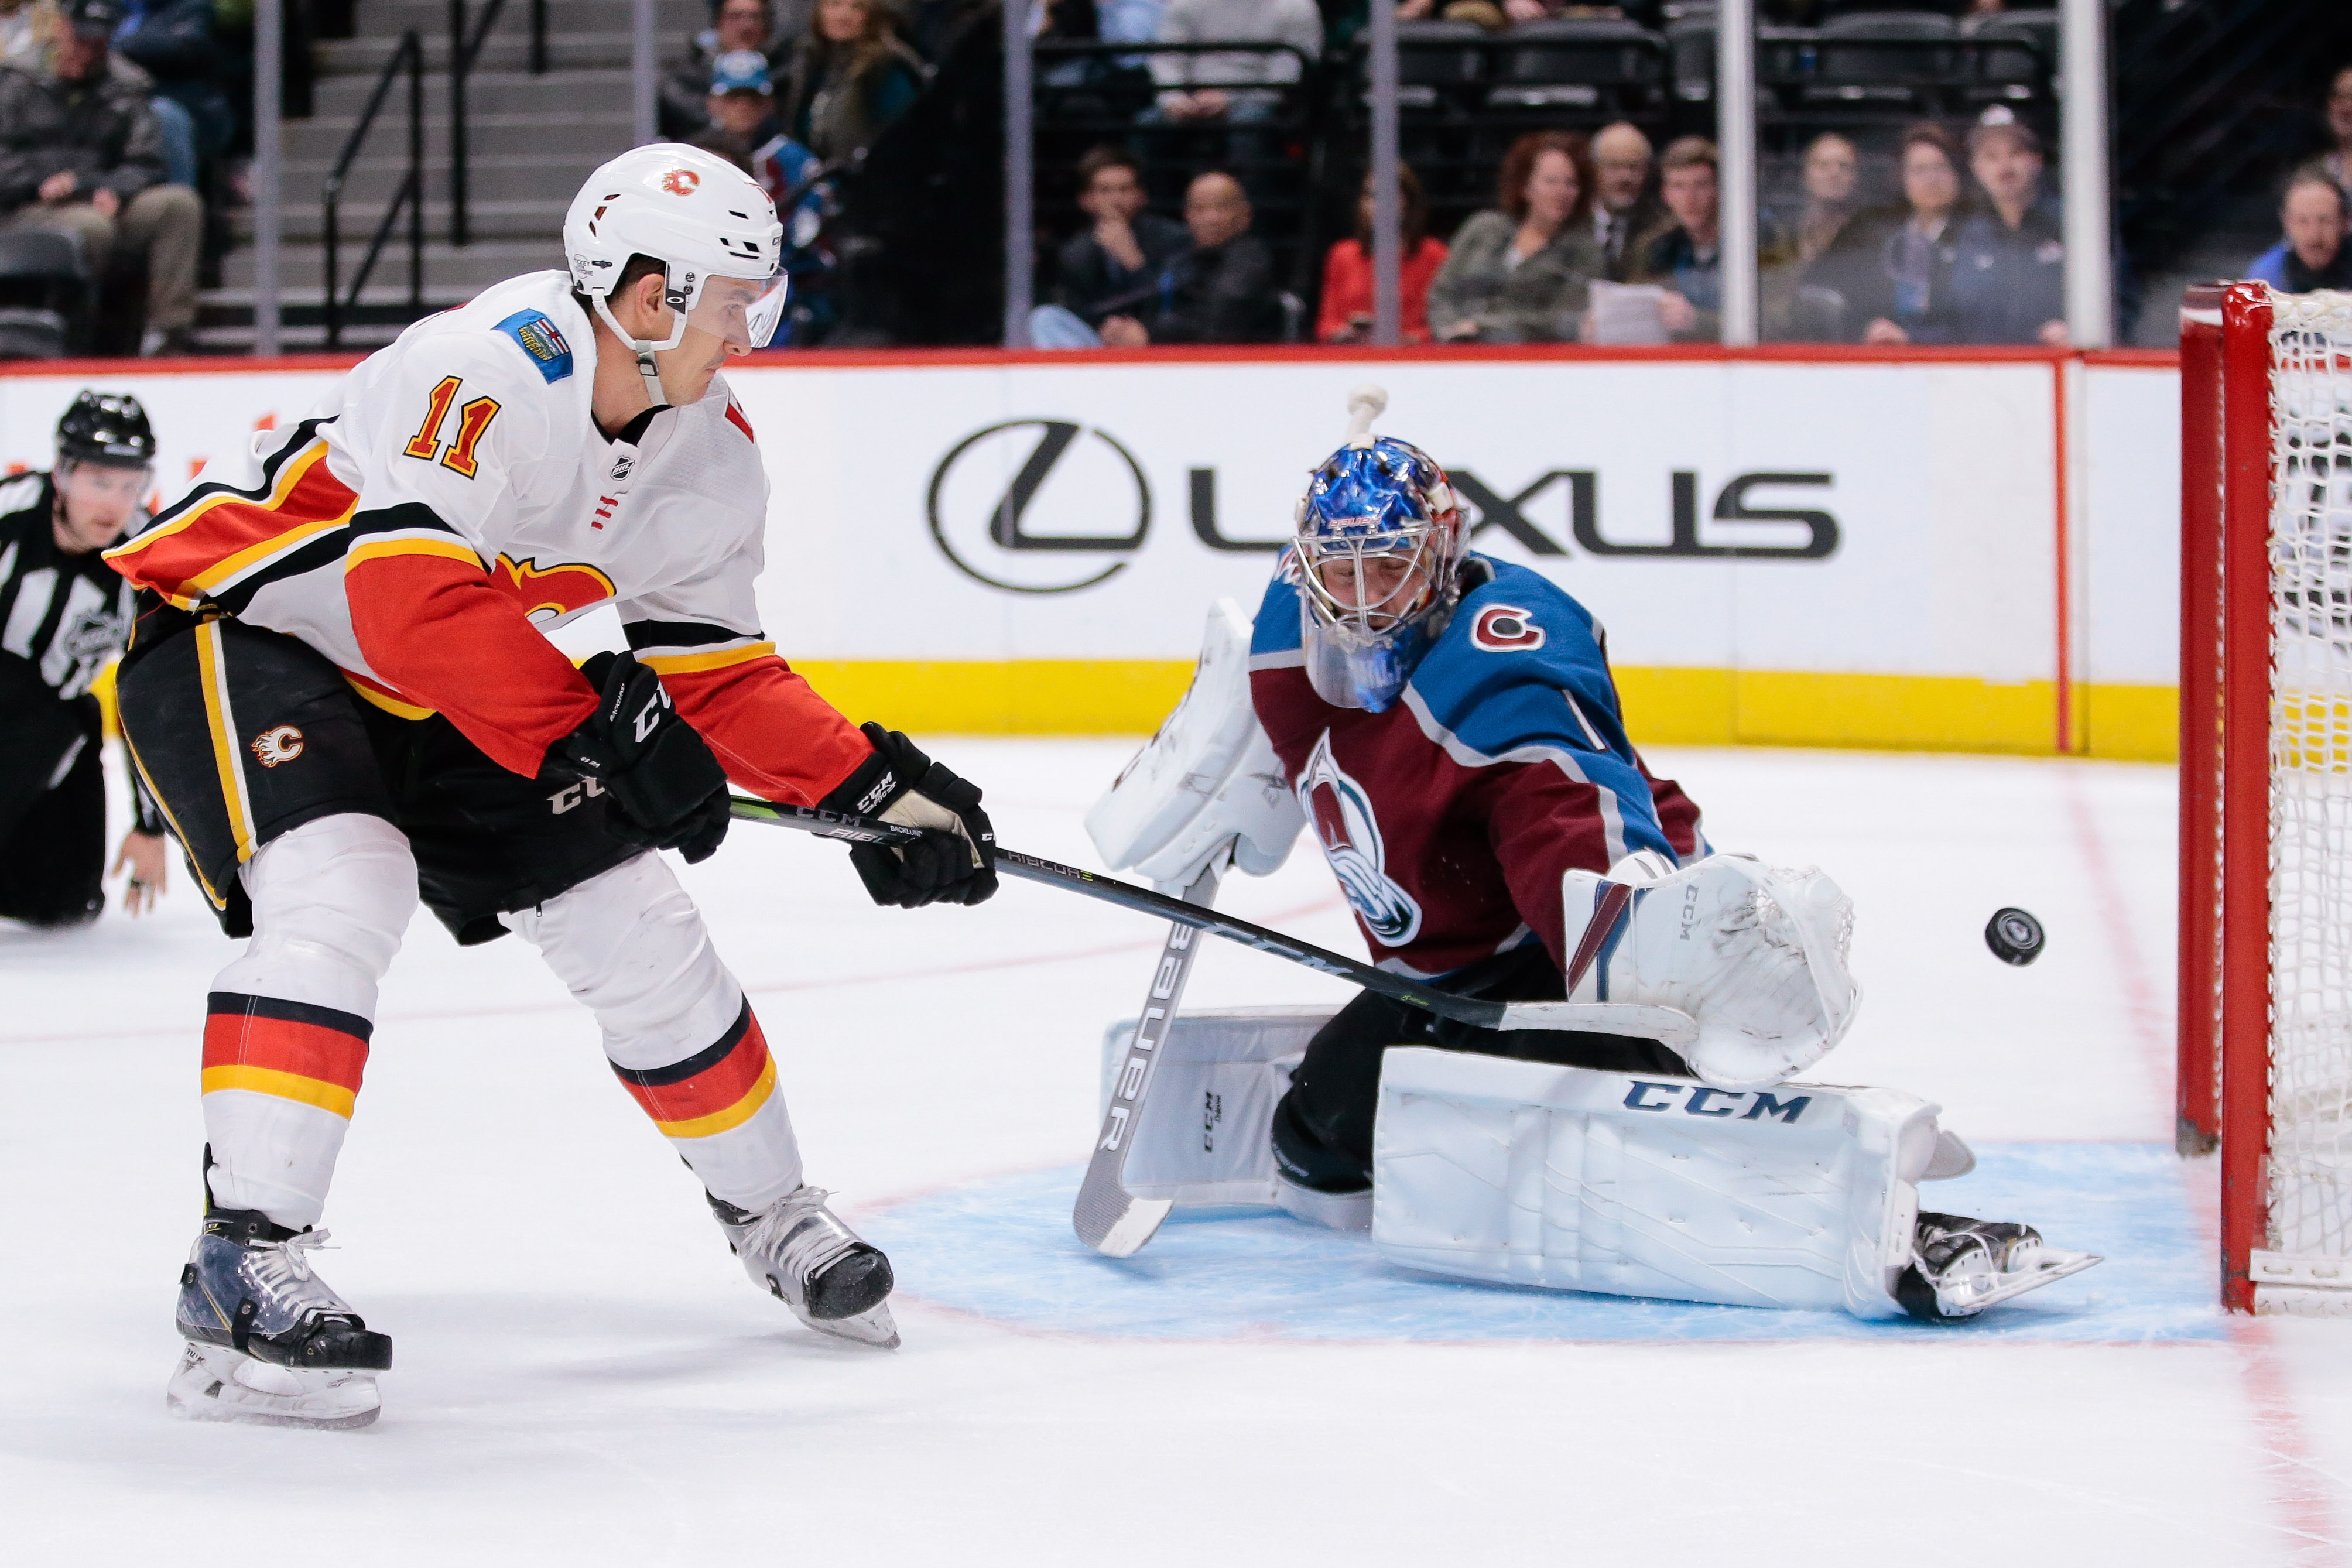 59d53f774 Colorado Avalanche at Calgary Flames (04/13/19) – Odds and NHL ...